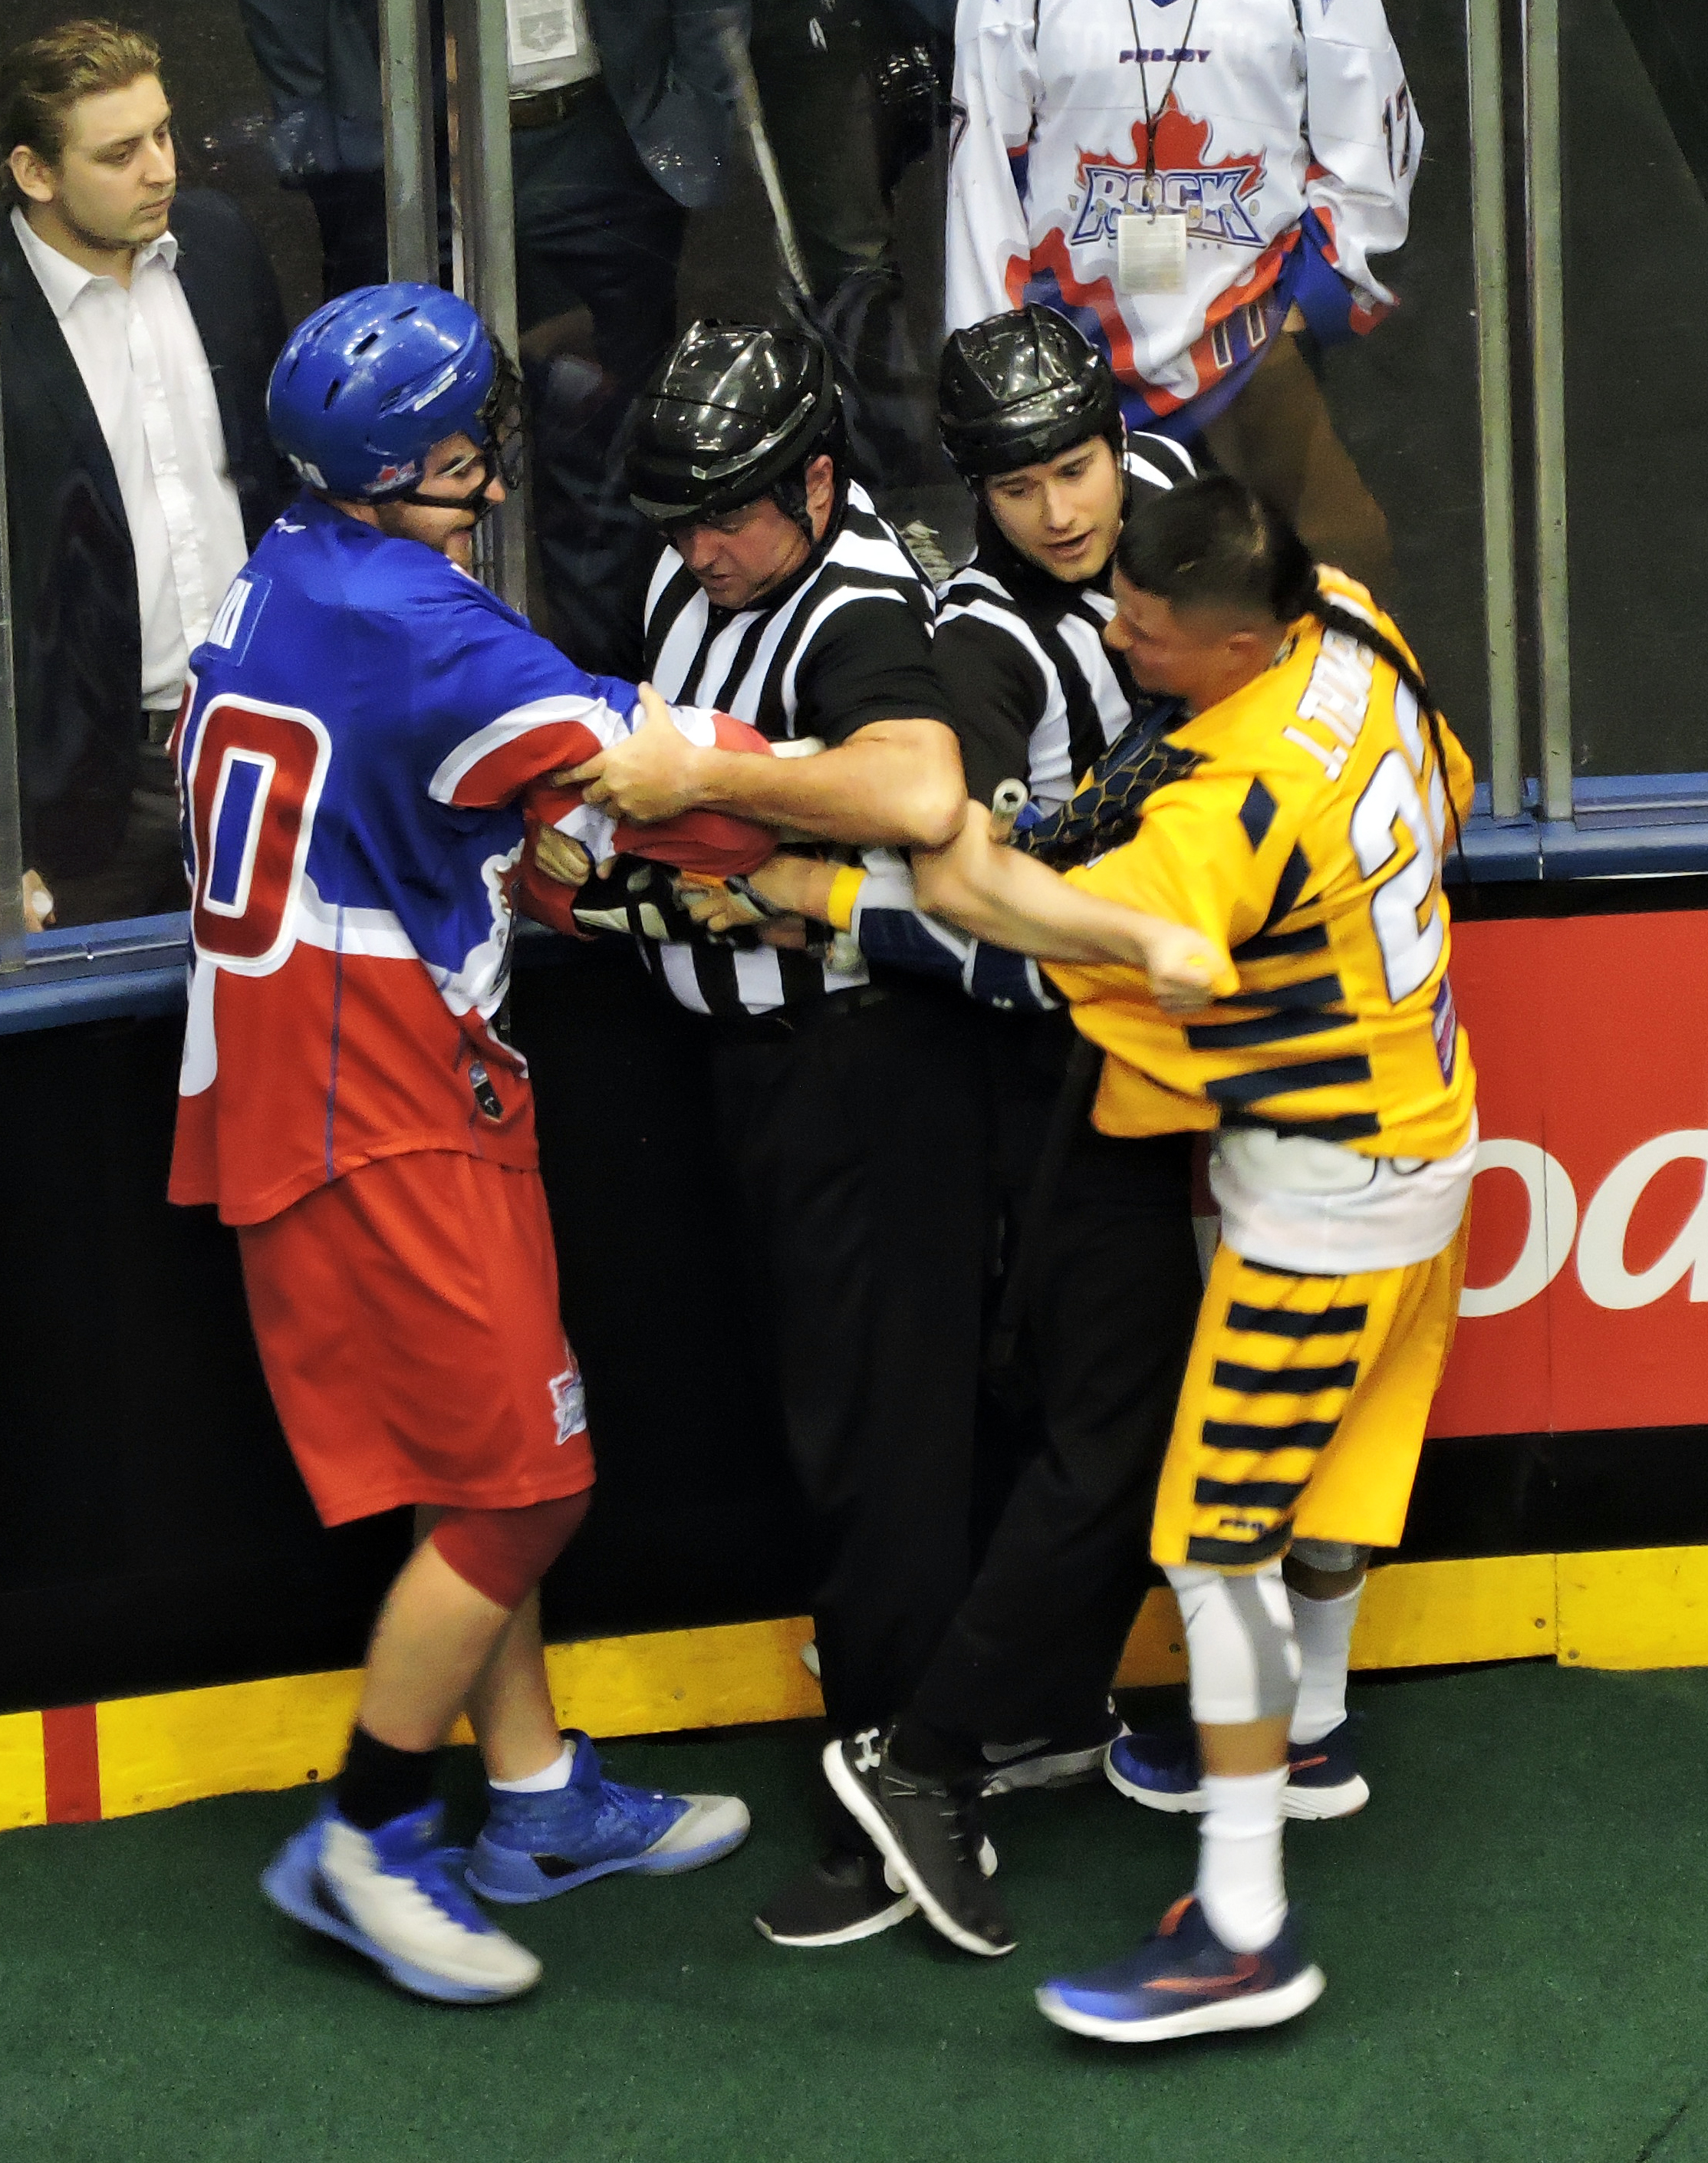 Bradley Kri of the Toronto Rock and Jerome Thompson of the Georgia Swarm exchange words at the end of the east division semi-final on May 13, 2017 at the Air Canada Centre. (Photo credit: Anna Taylor)